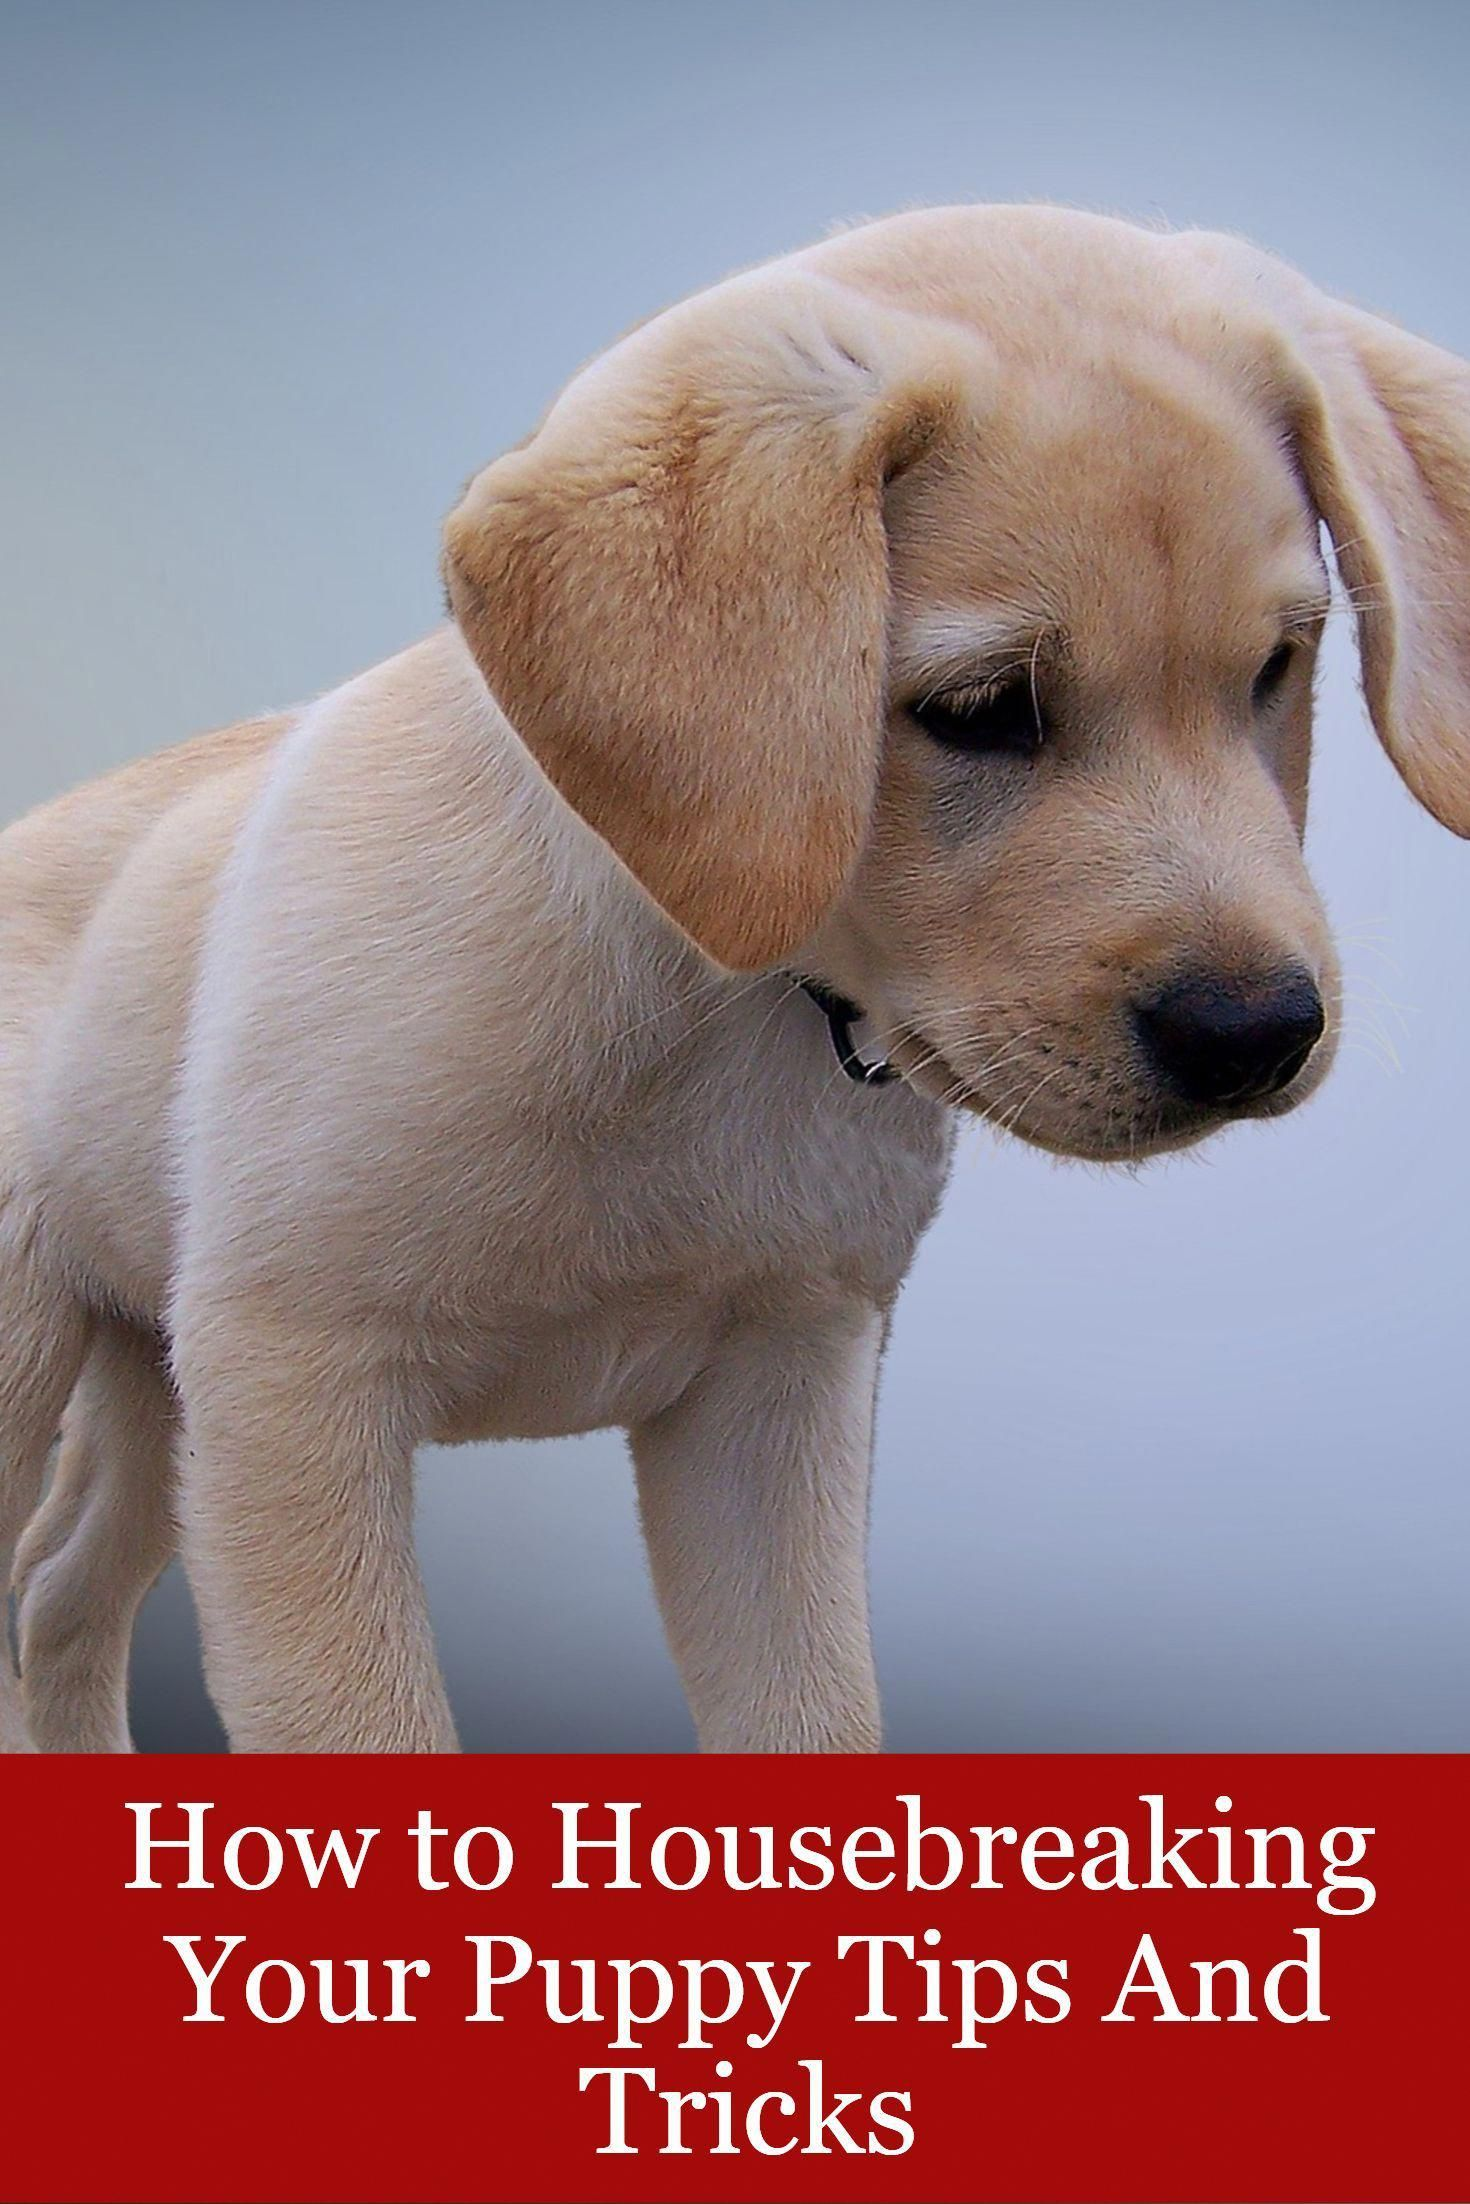 How To Housebreaking Your Puppy Tips And Tricks Housebreaking Puppy